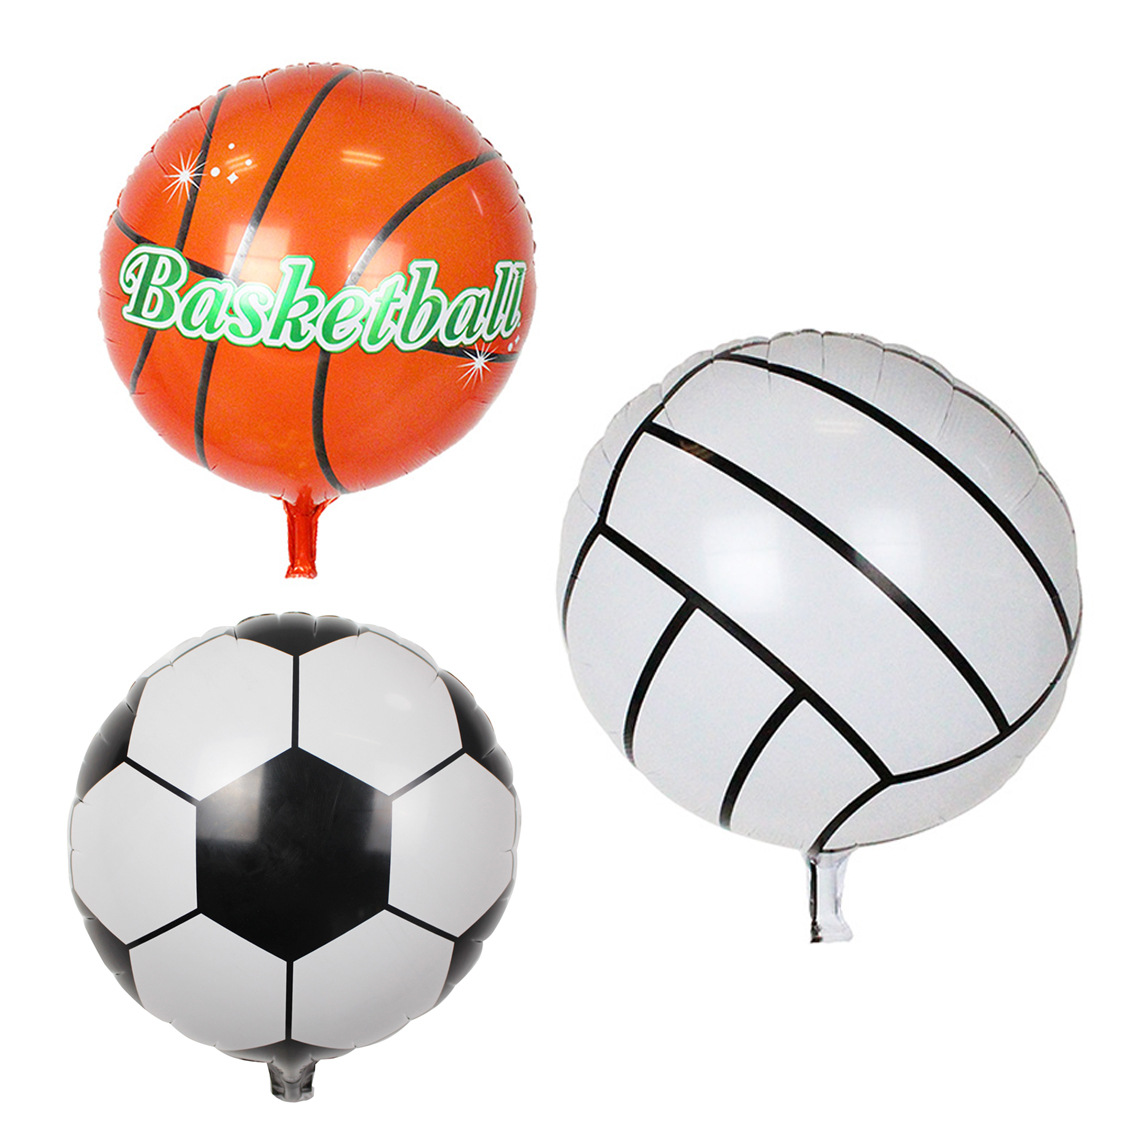 2017 New 18 Inch Football Balloons Basketball Volleyball Wholesale Wedding Party Decoration Birthday Gift for Children Kids Toys(China (Mainland))